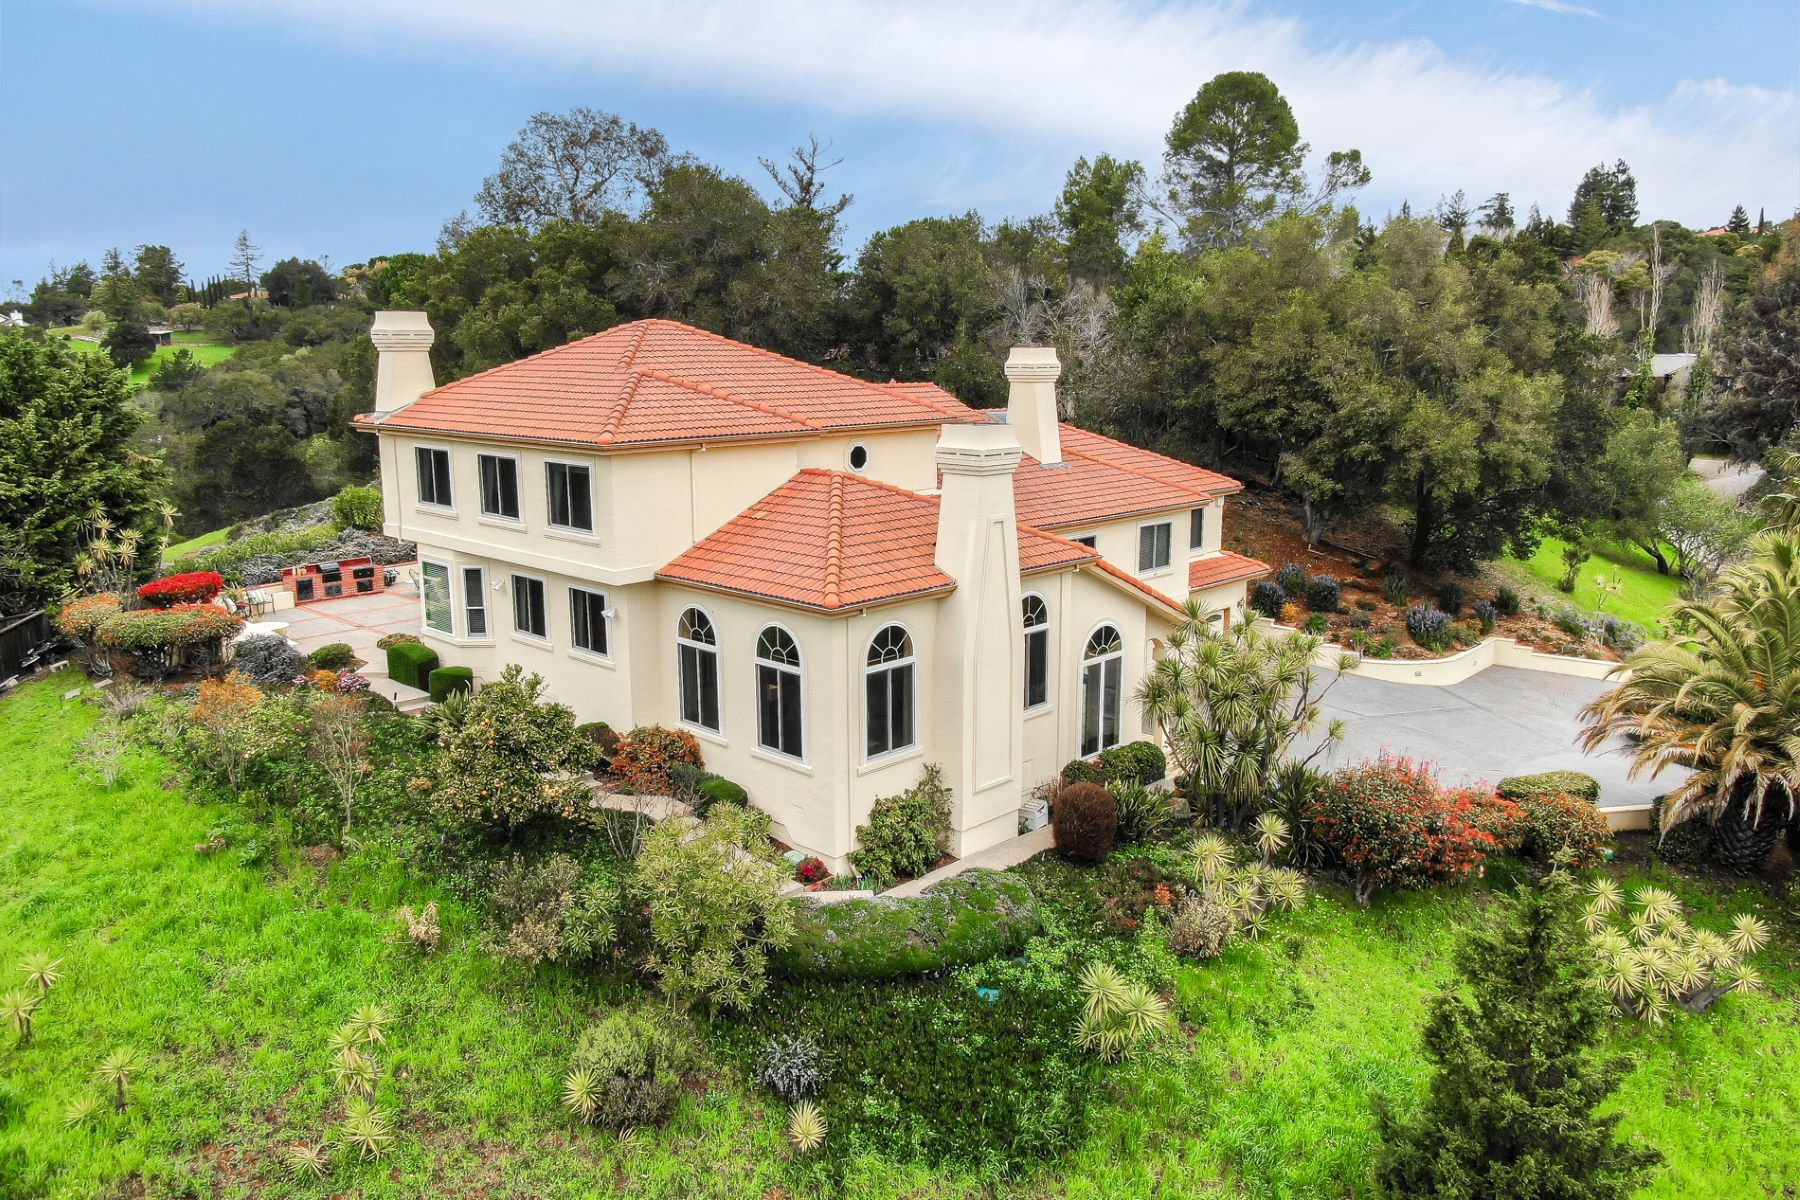 Single Family Home for Active at Spectacular Mediterranean Villa 643 W Glen Way Woodside, California 94062 United States